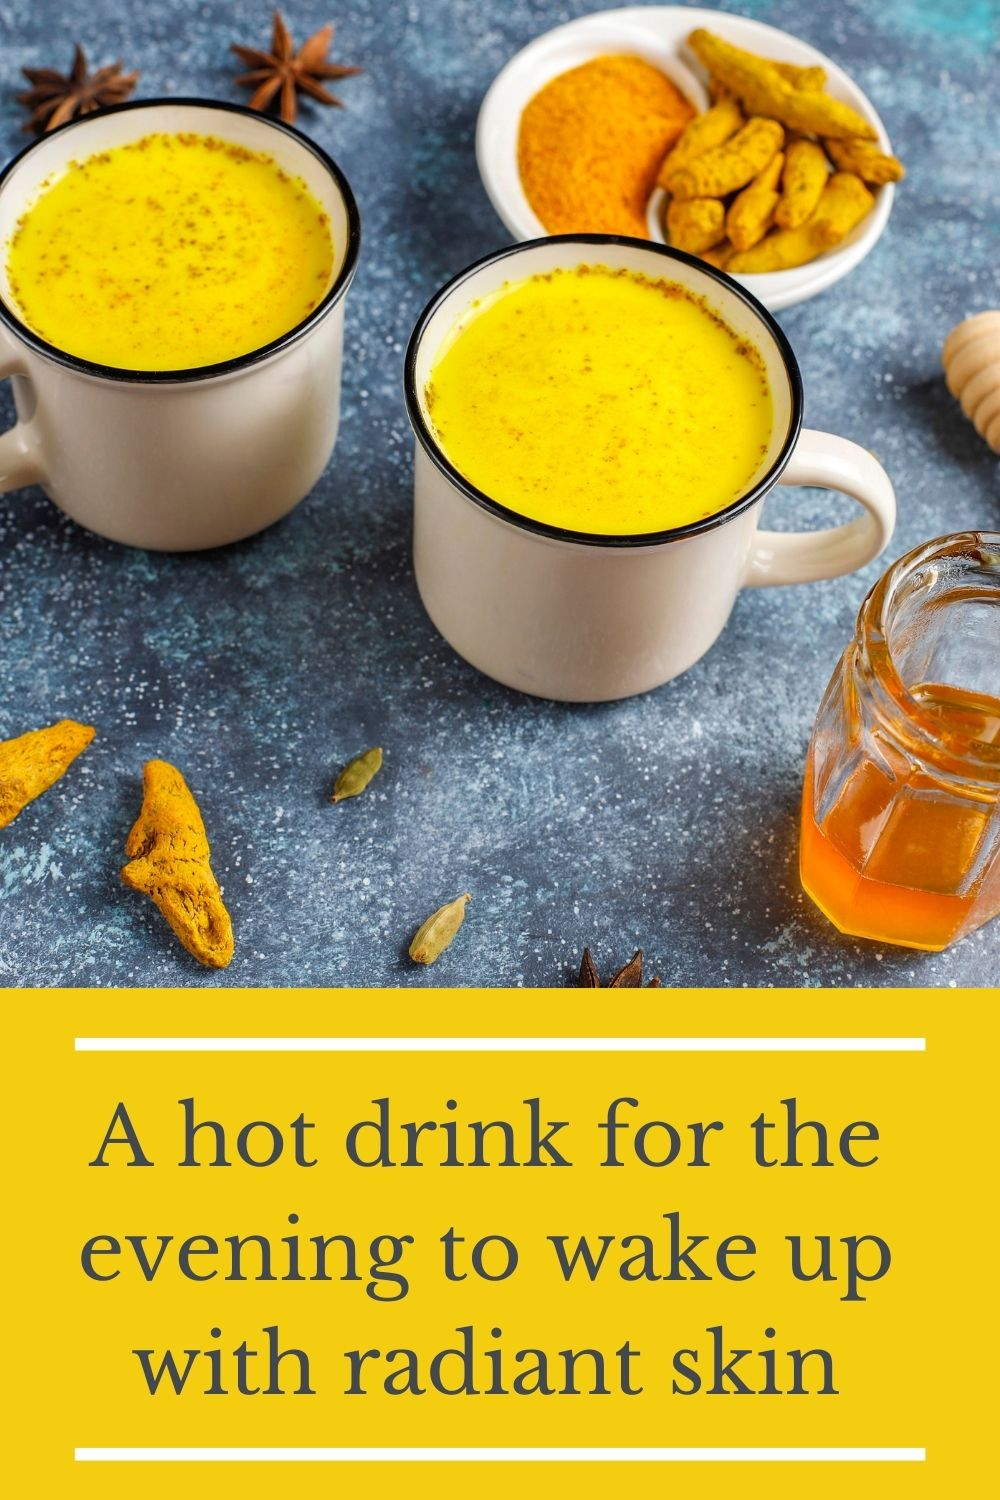 A hot drink for the evening to wake up with radiant skin